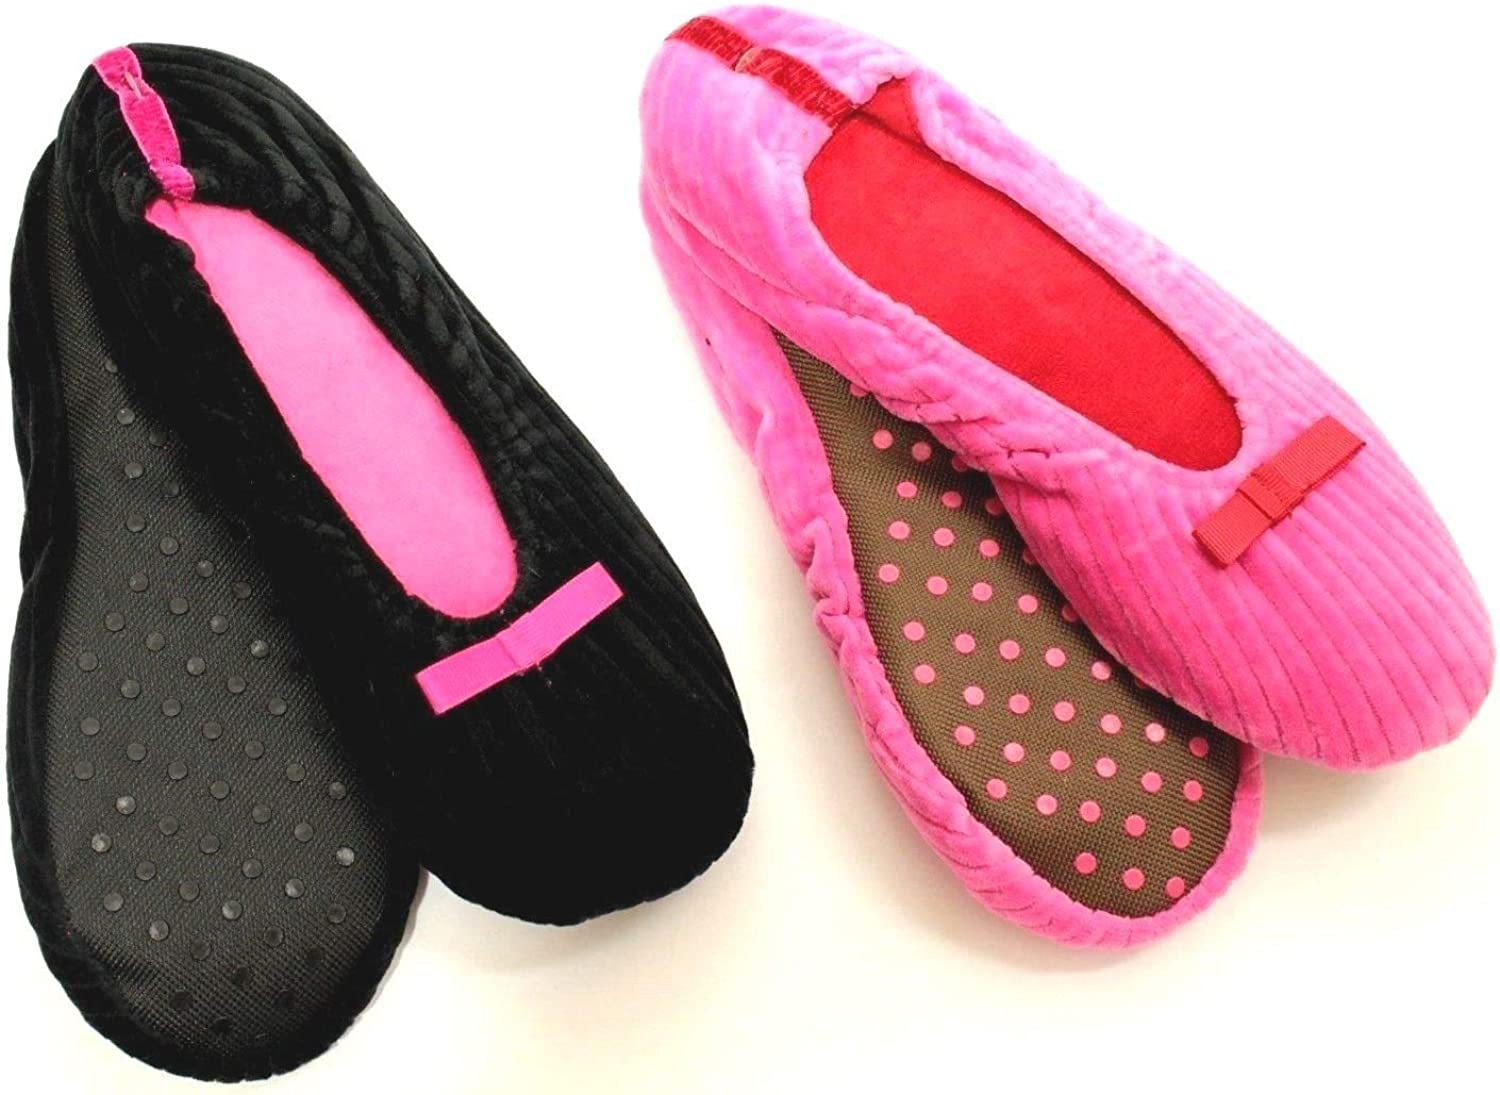 Crushed Velvet Pink Slippers Different Sizes Available